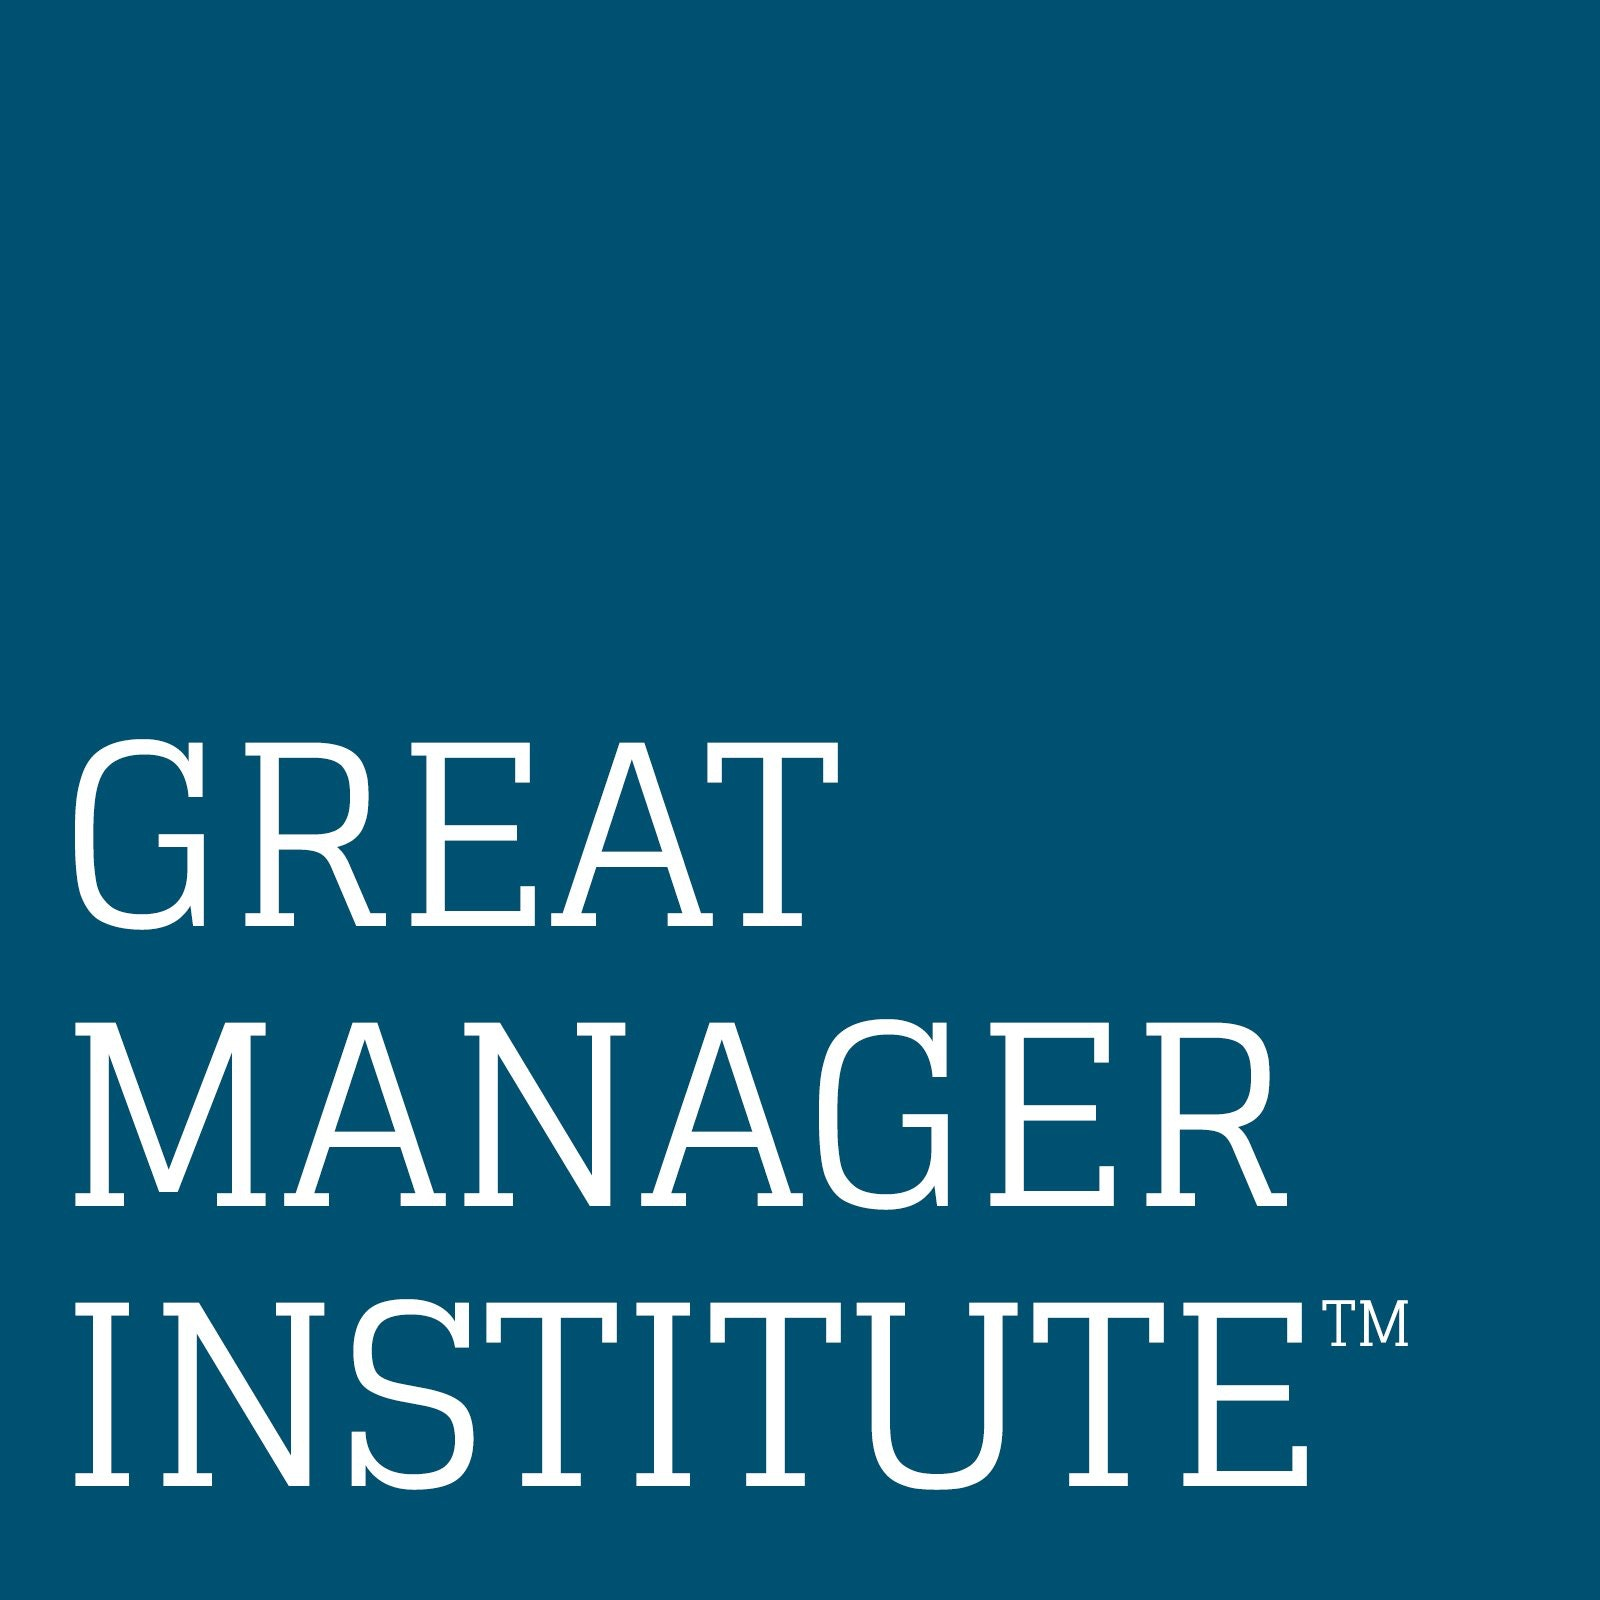 Great Manager Institute™